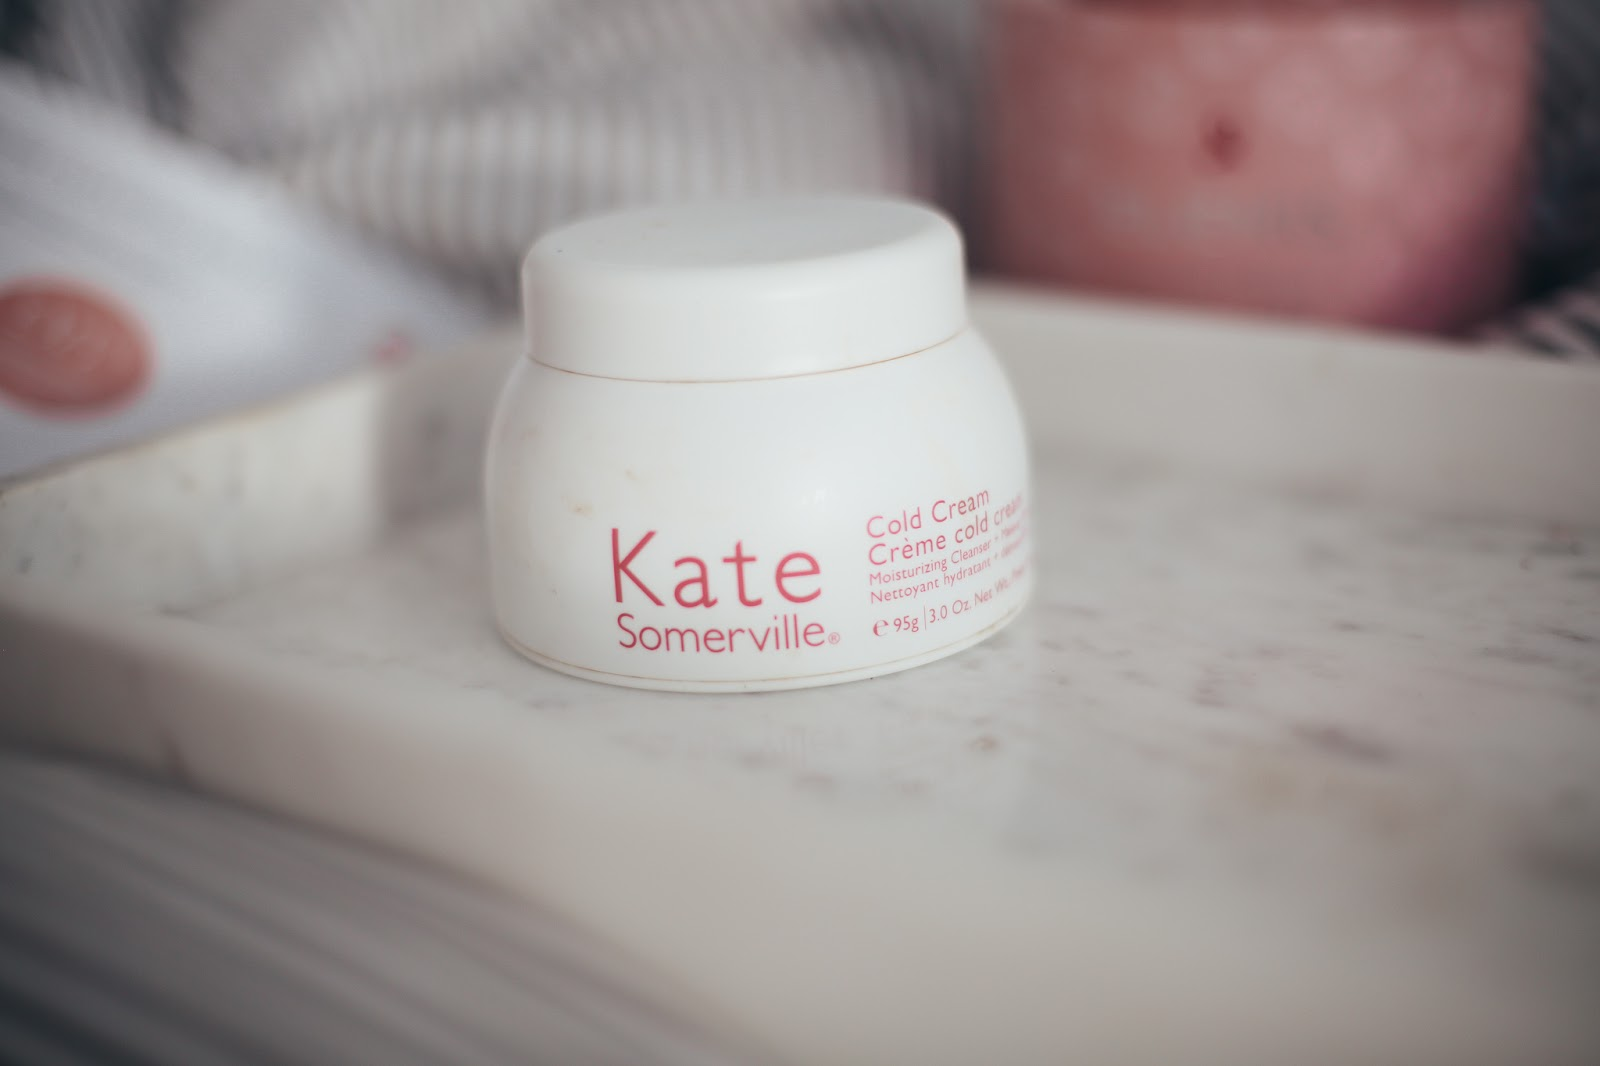 Kate Somerville Cold Cream